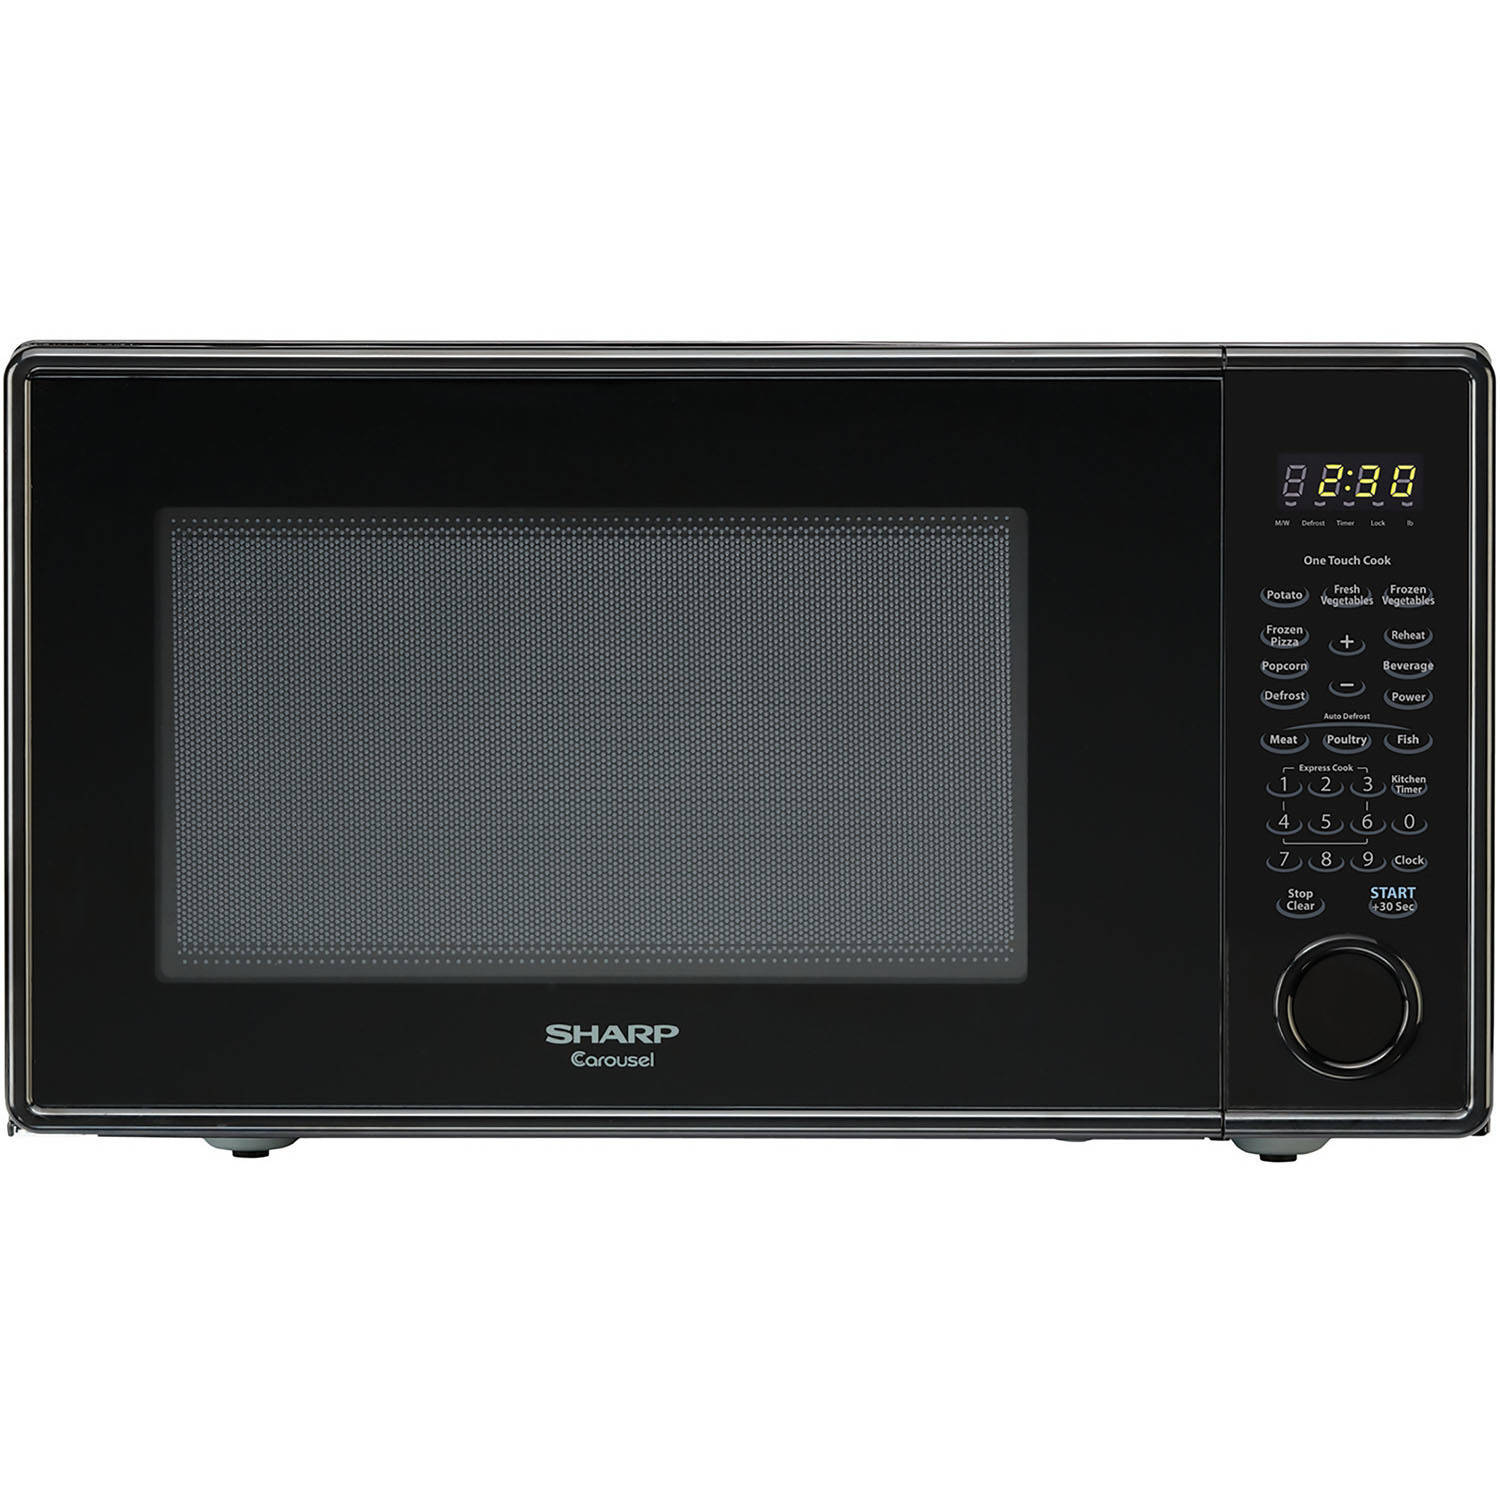 Sharp R309YK Carousel Countertop Microwave Oven 1.1 cu. ft. 1000W Black